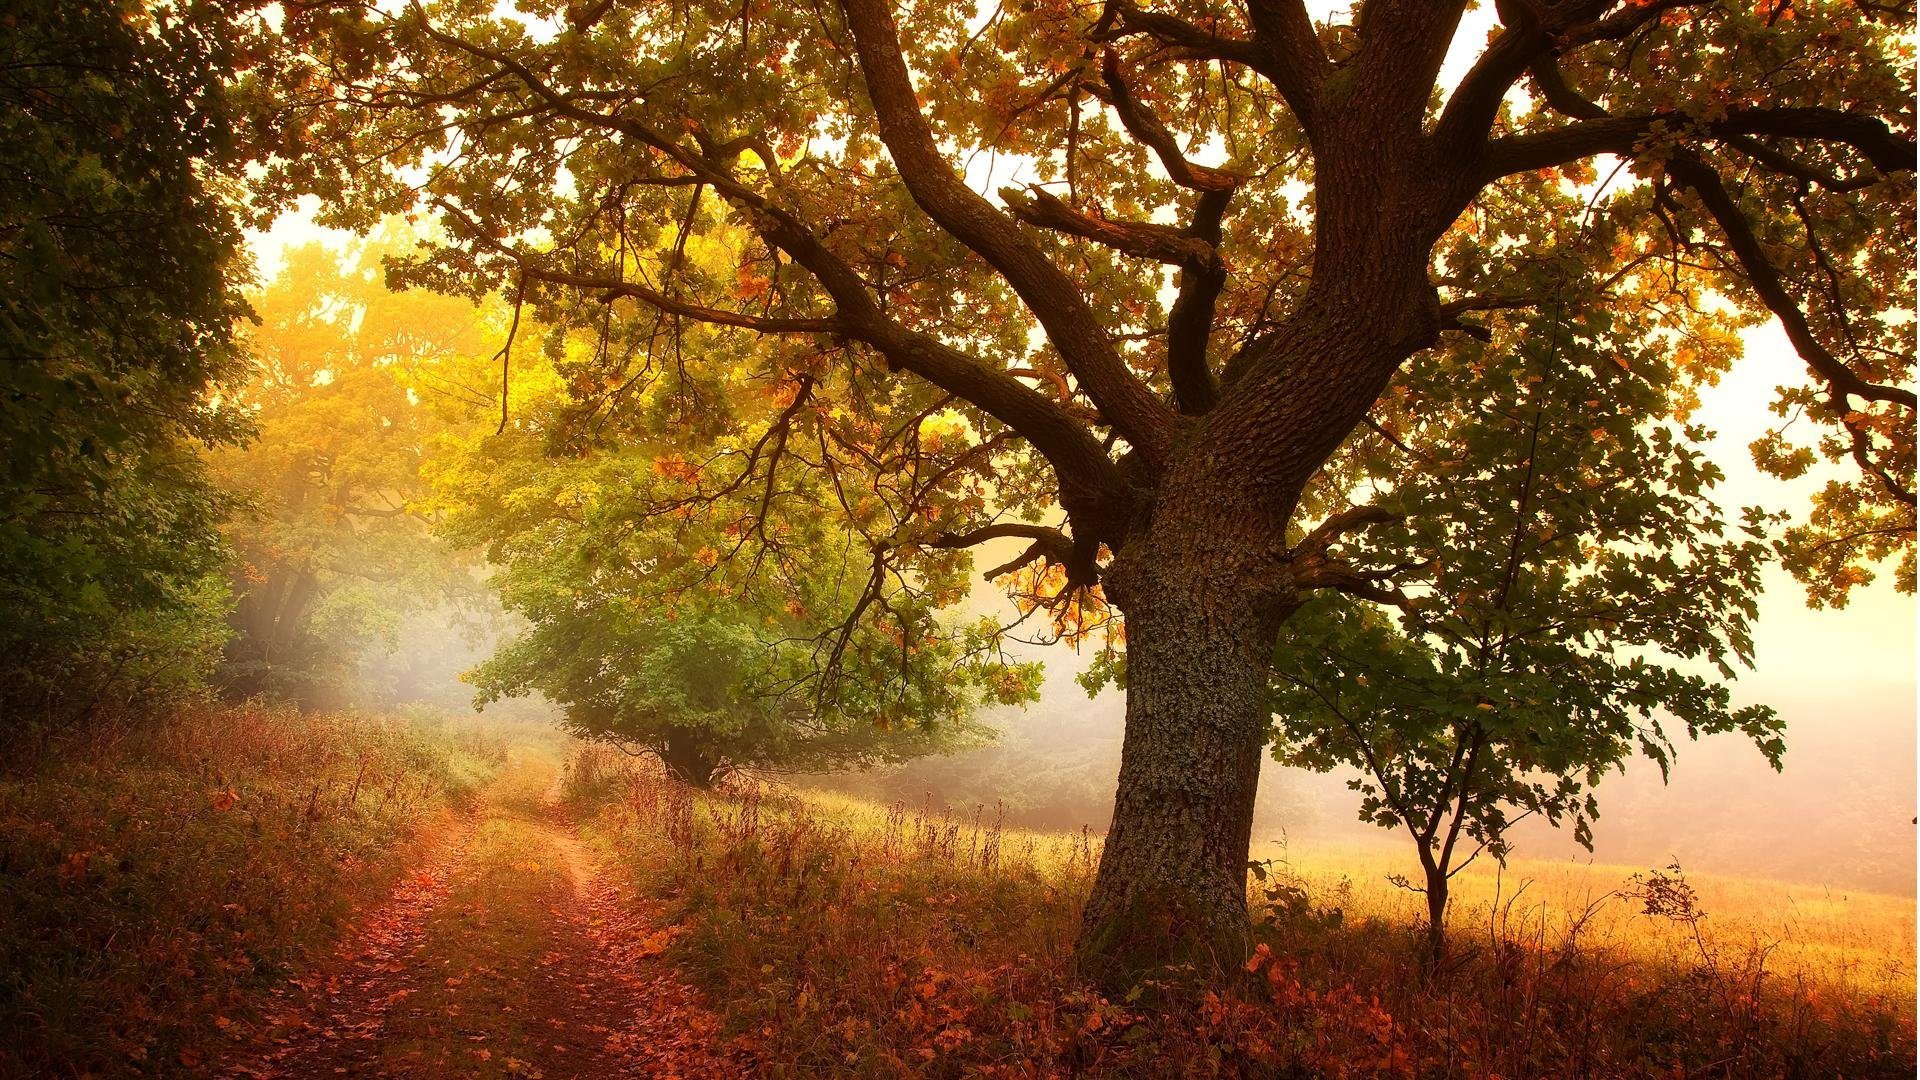 Free Wallpaper Fall Leaves 1600x900 4k Scenic Route Wallpapers High Quality Download Free